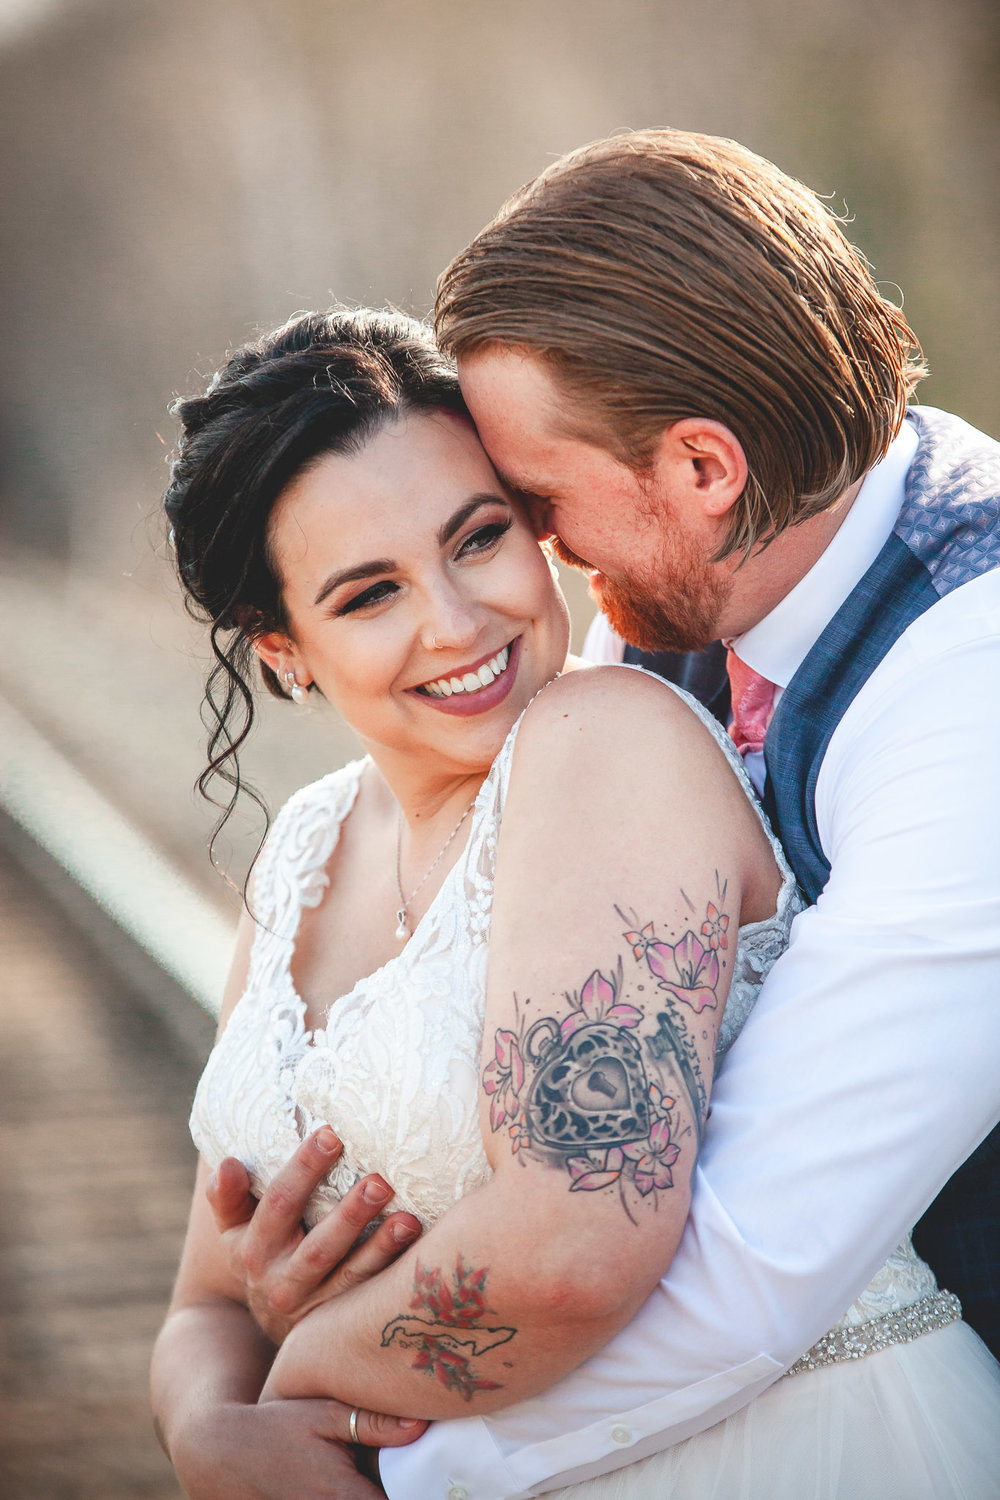 Amy D Photography- Bride and Groom-Barrie Wedding Photography Muskoka Wedding Photography Bride and Groom Poses Bride and Groom Train Tracks Snow Valley Wedding-45.jpg